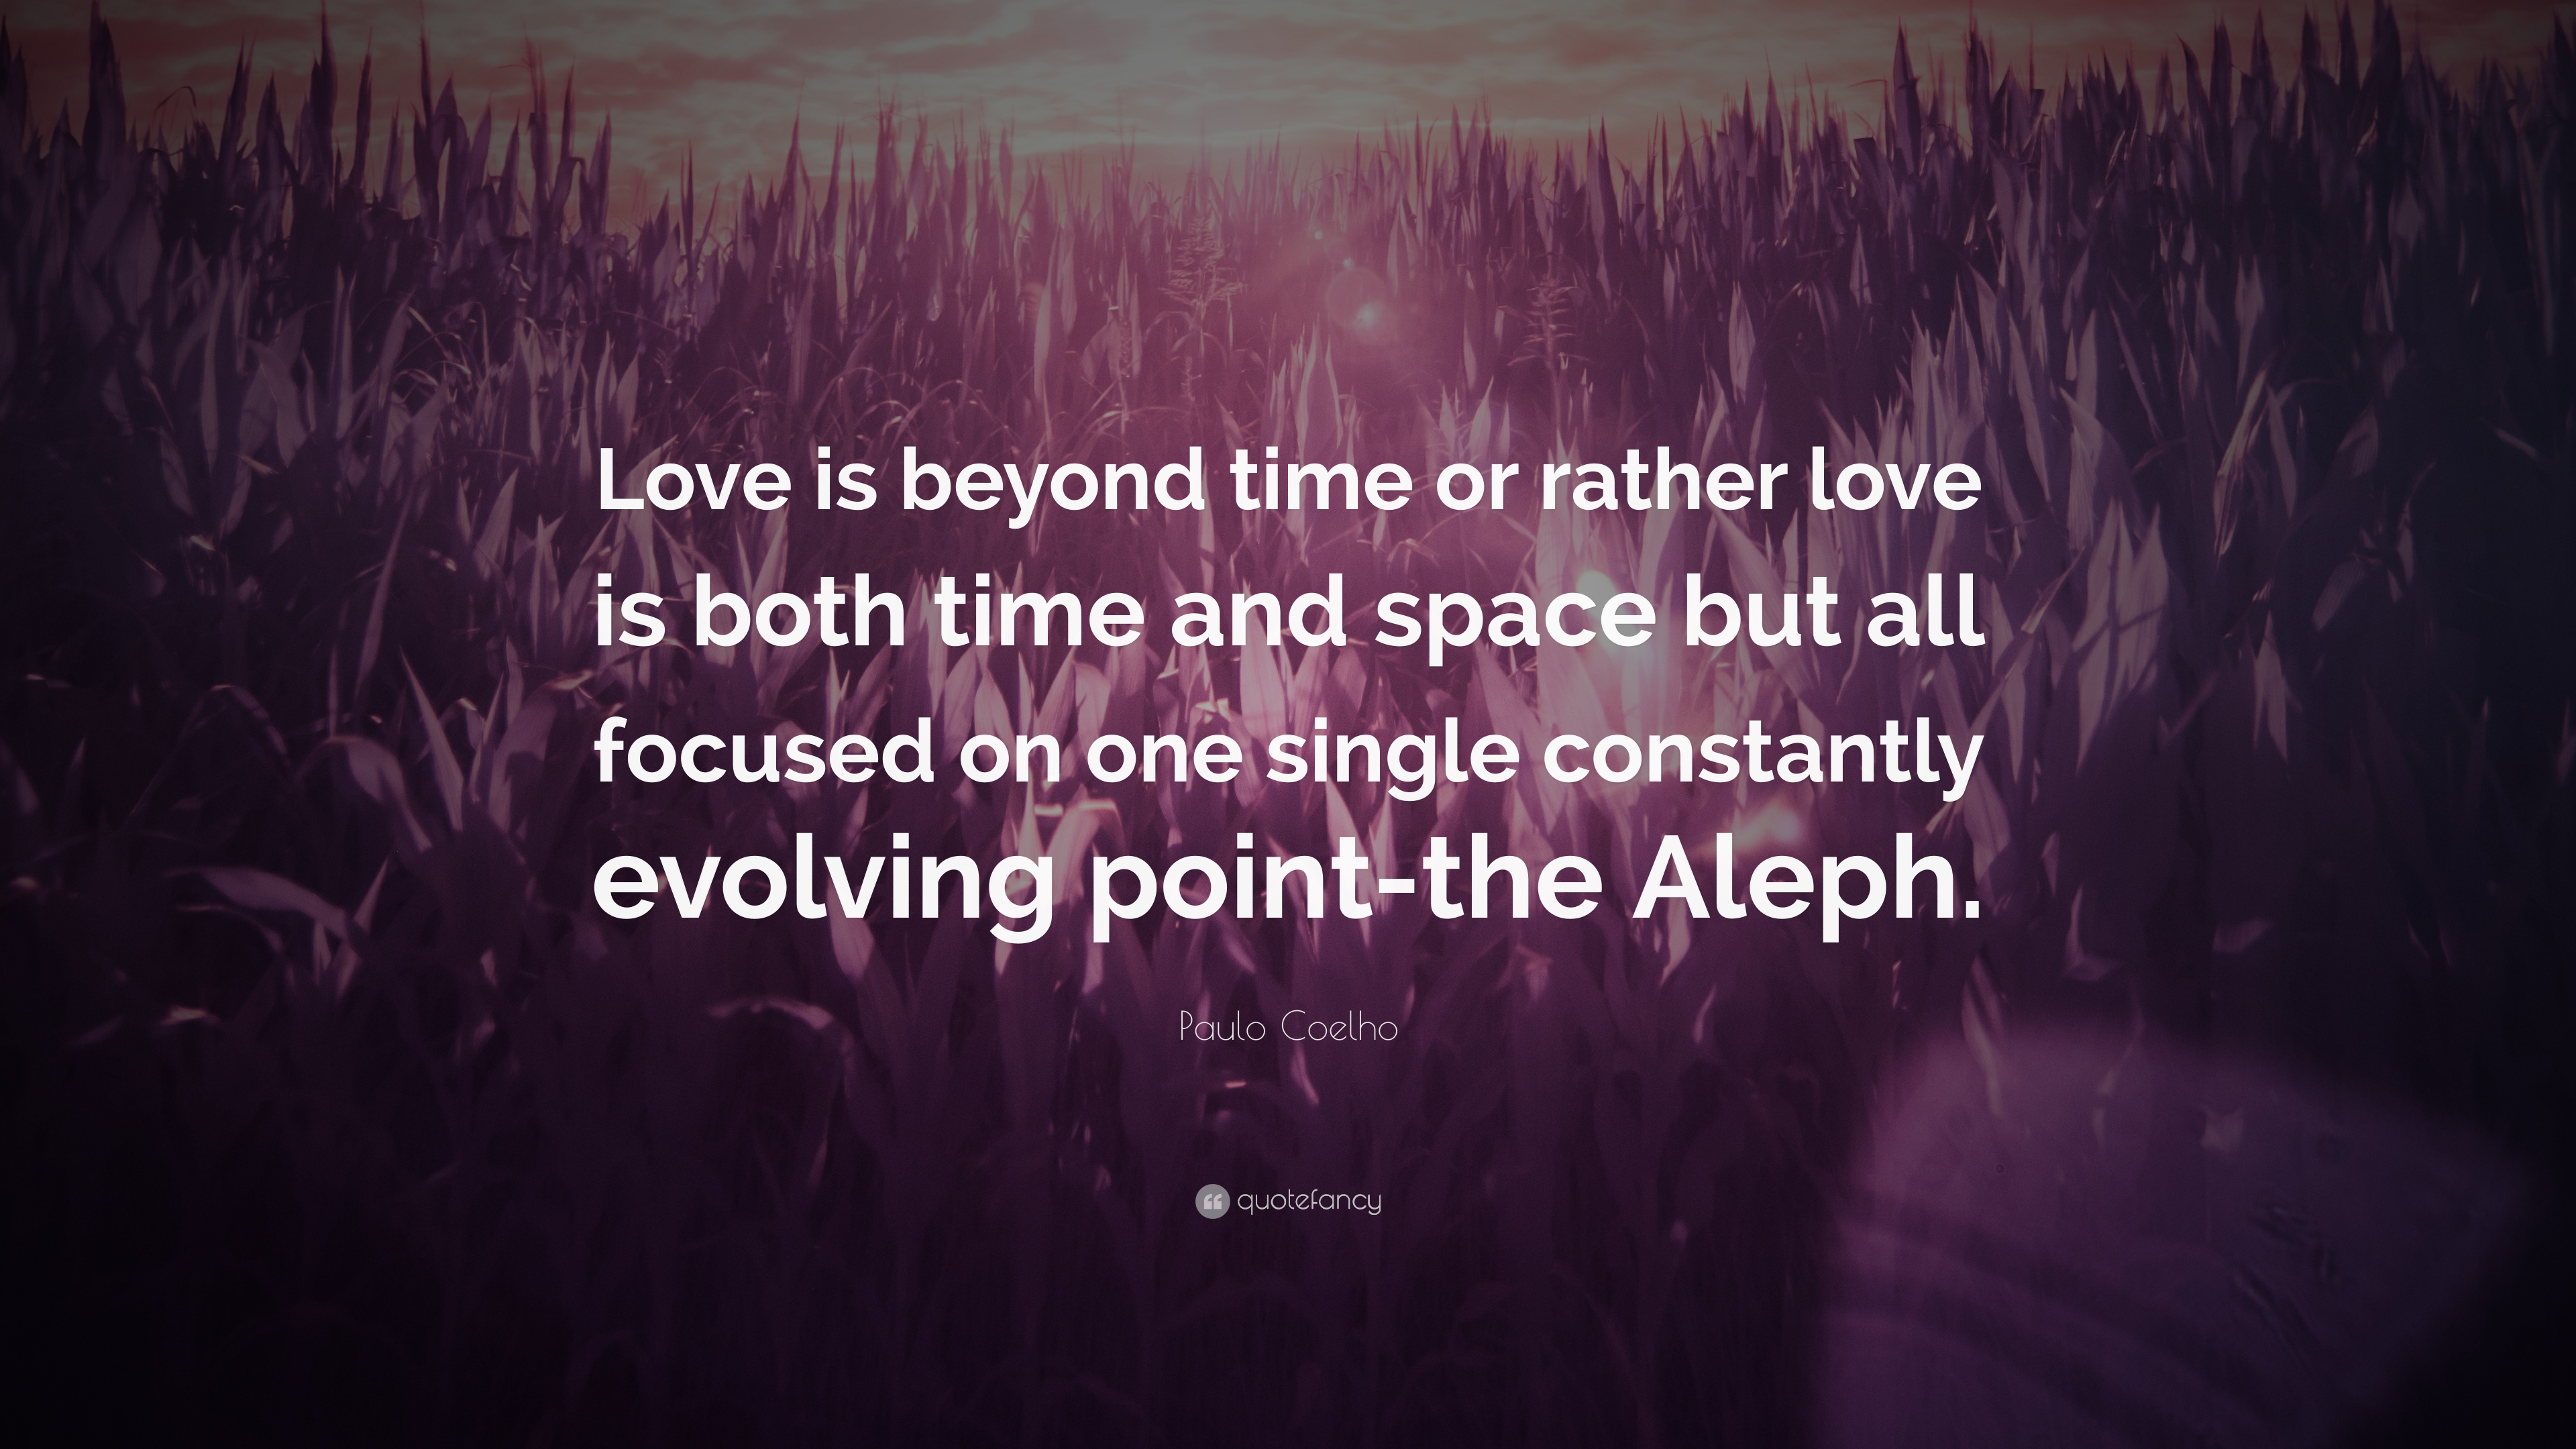 Paulo Coelho Quote Love Is Beyond Time Or Rather Love Is Both Time